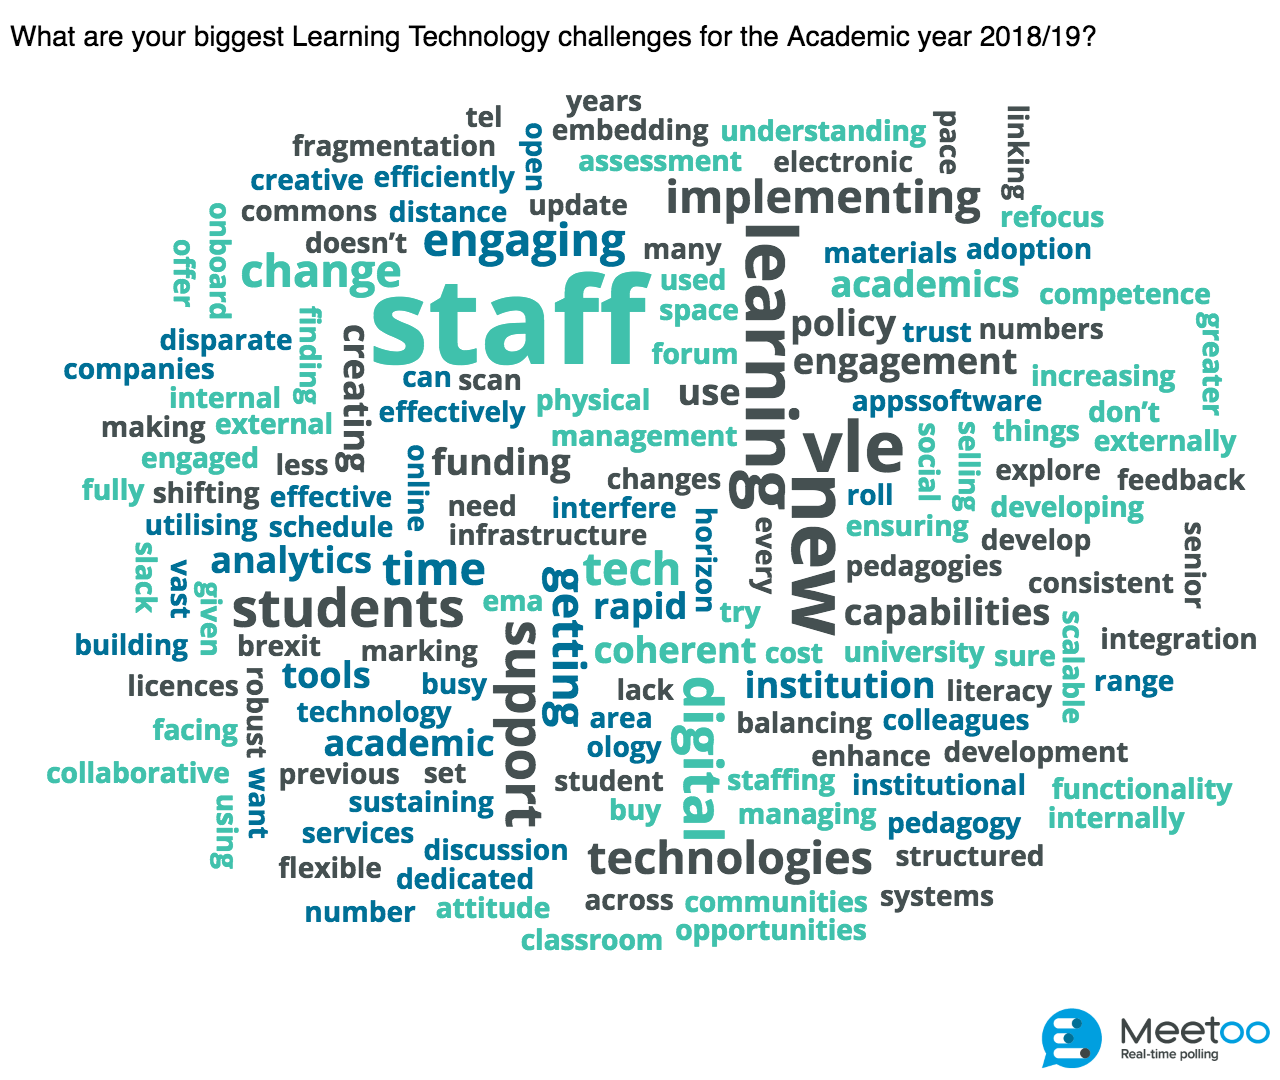 What are the main learning technology challenges for 2019?